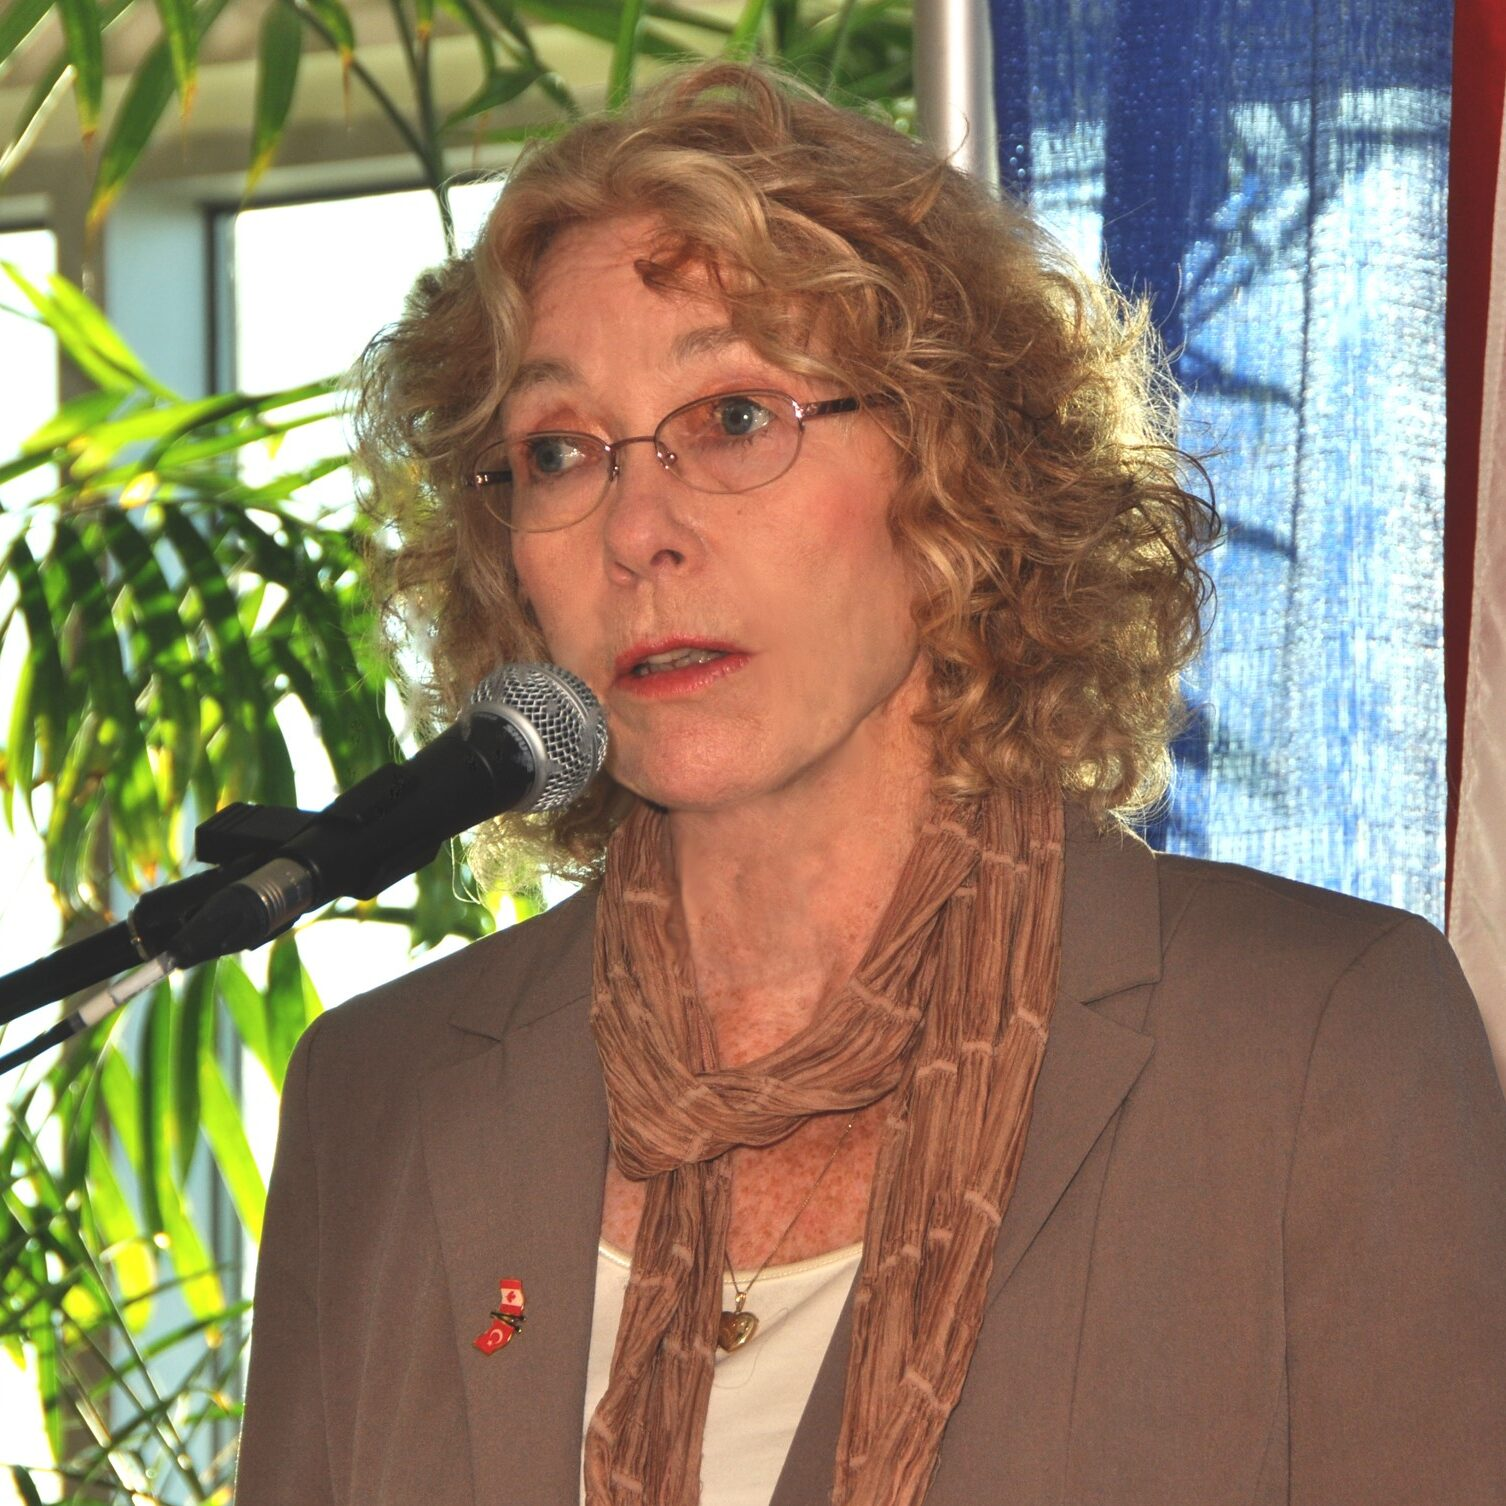 Wendy Lill, a white woman with light blonde curly hair, stands centre frame. She is speaking into a microphone and behind her are leaves from a plant.